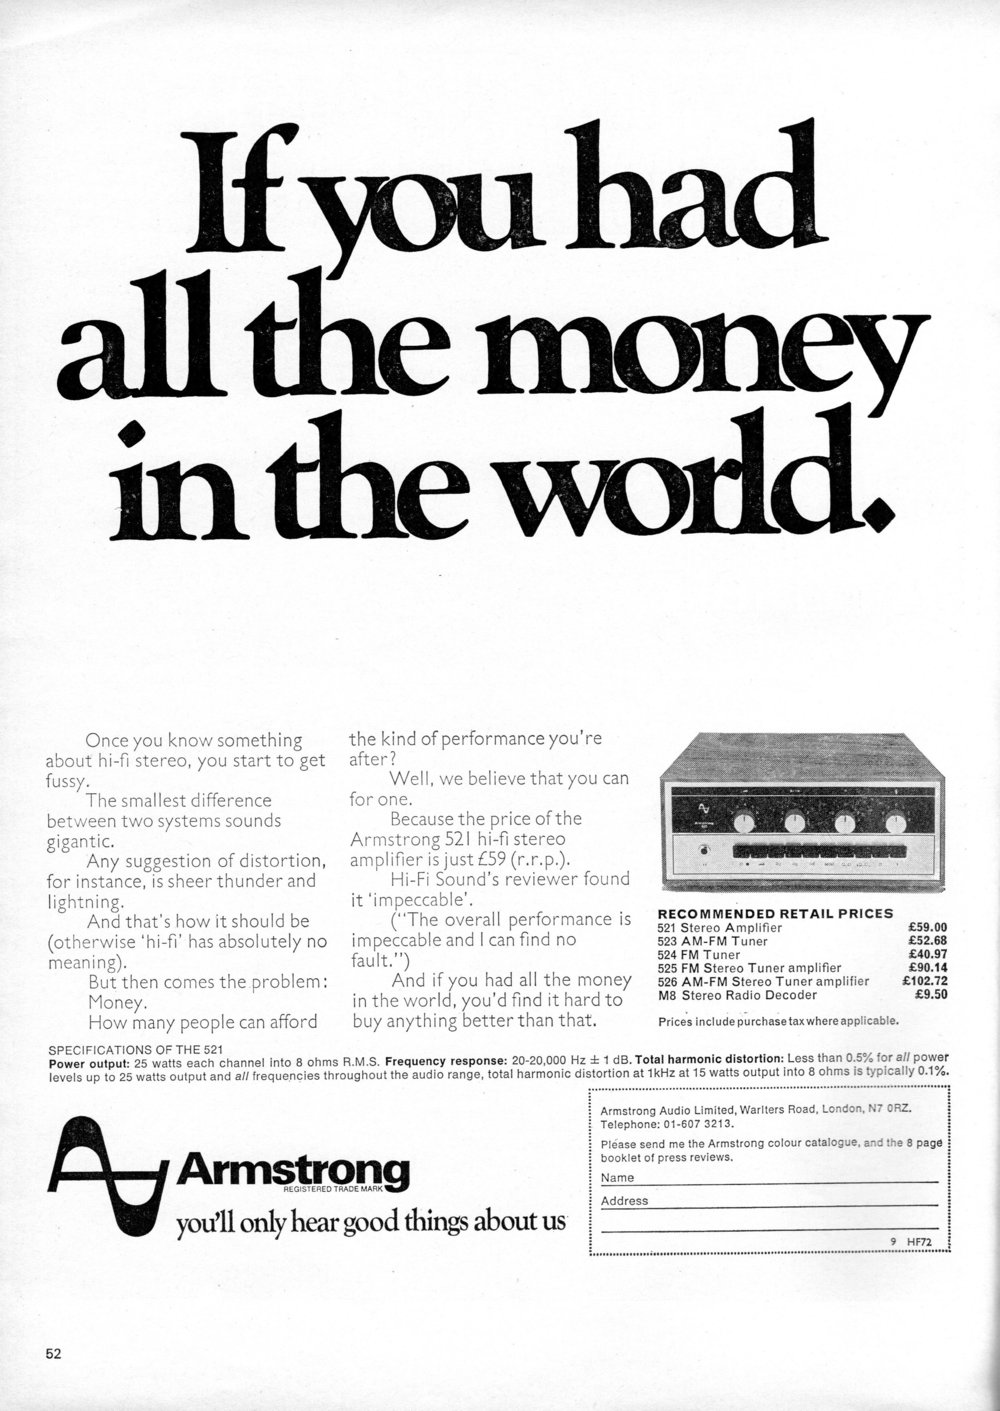 Armstrong Advert 1972.jpg